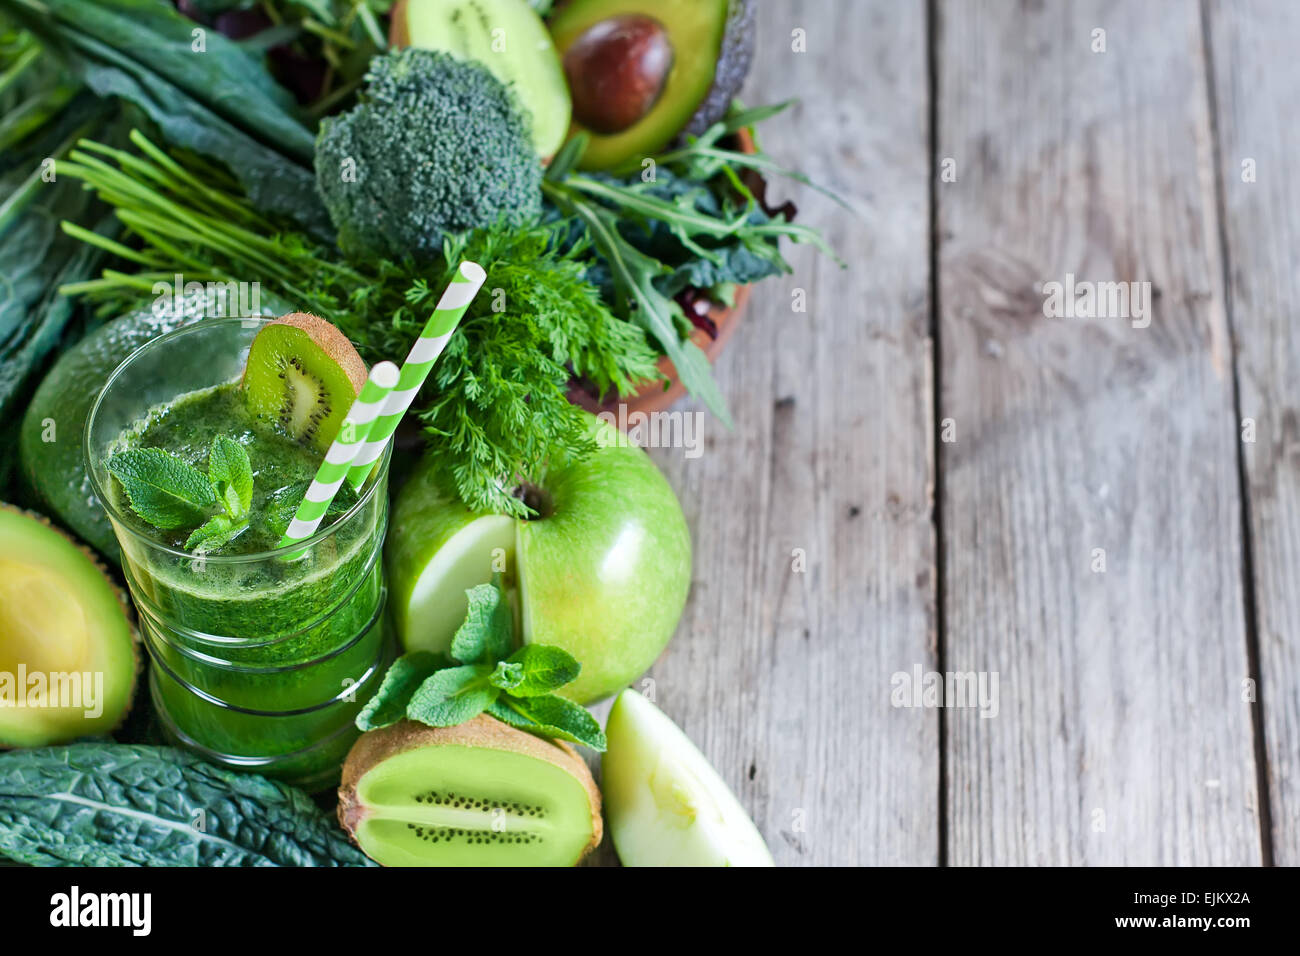 Green detox smoothie with raw vegetables and fruits. Copyspace background. Stock Photo